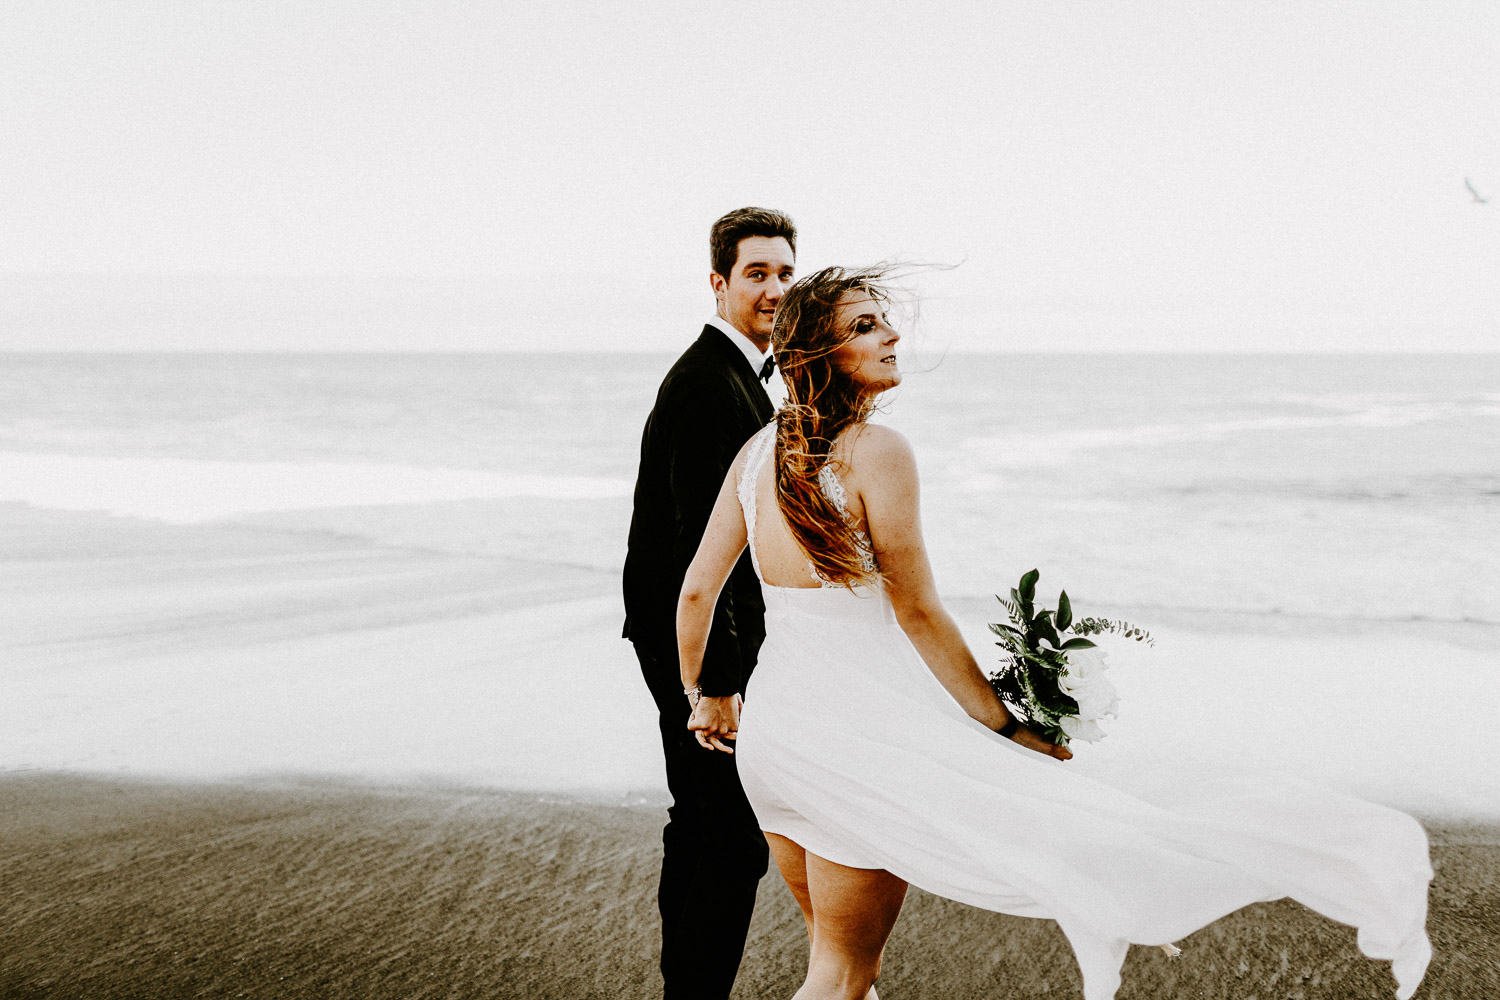 Image of groom and bride hold hands on beach